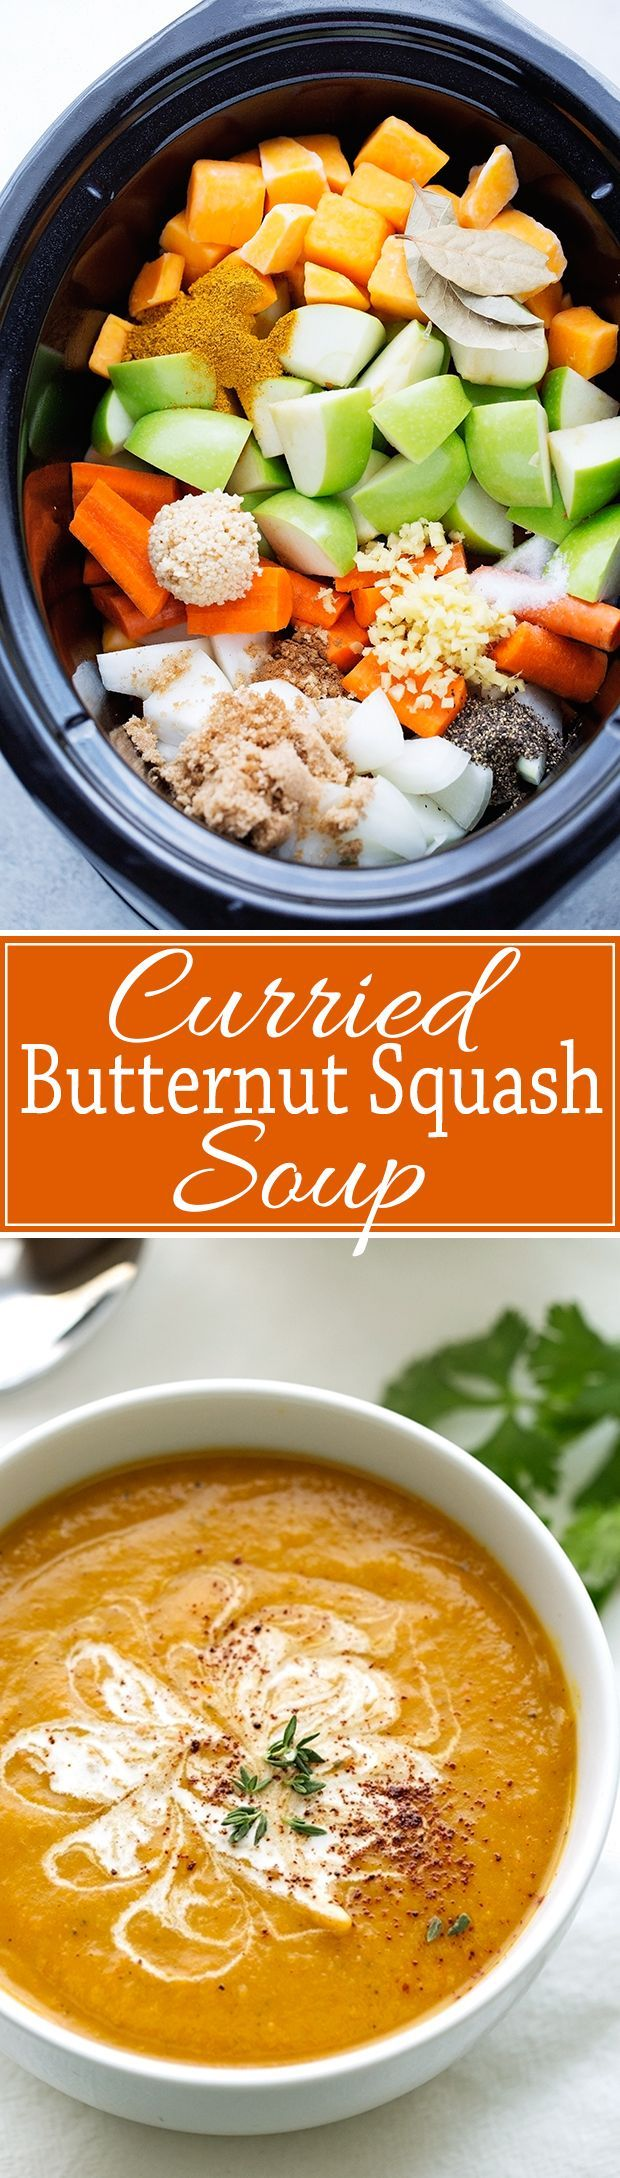 Curried Butternut Squash Soup {Slow Cooker} - Smooth, creamy, and super comforting curried Butternut Squash Soup made in the slow cooker.    Littlespicejar.com